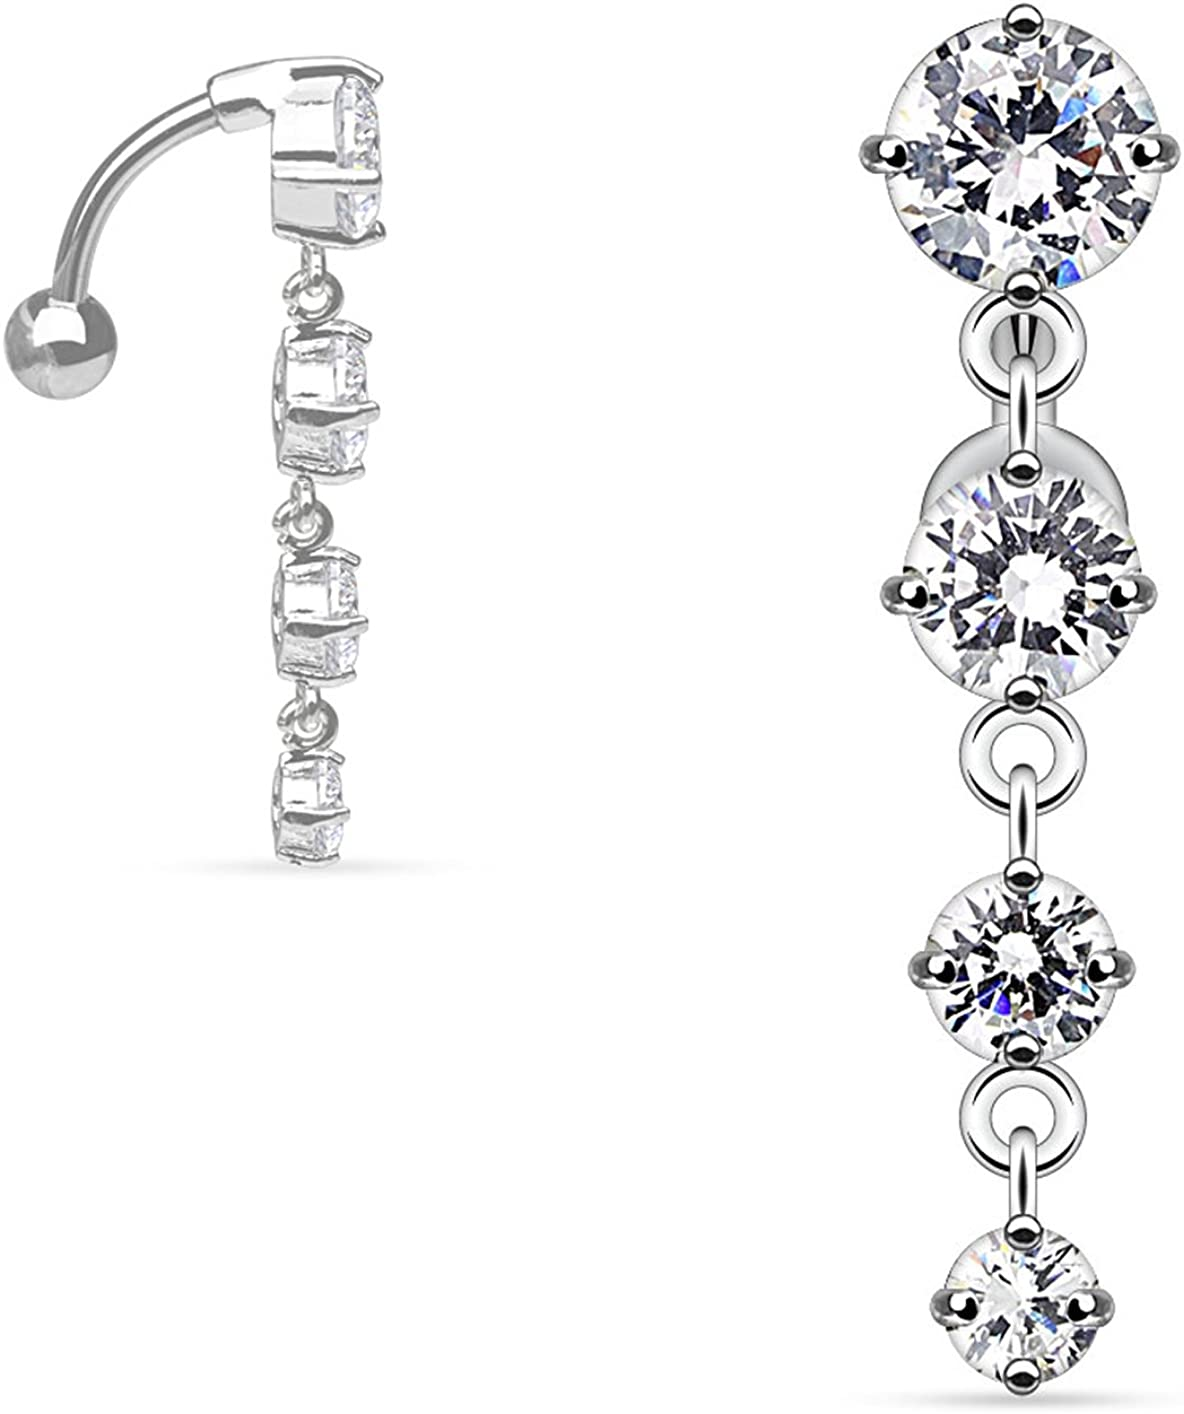 Forbidden Body Jewelry 14G Belly Button Rings Dangle 316l Surgical Steel Belly Ring with Casacade of Clear Gems